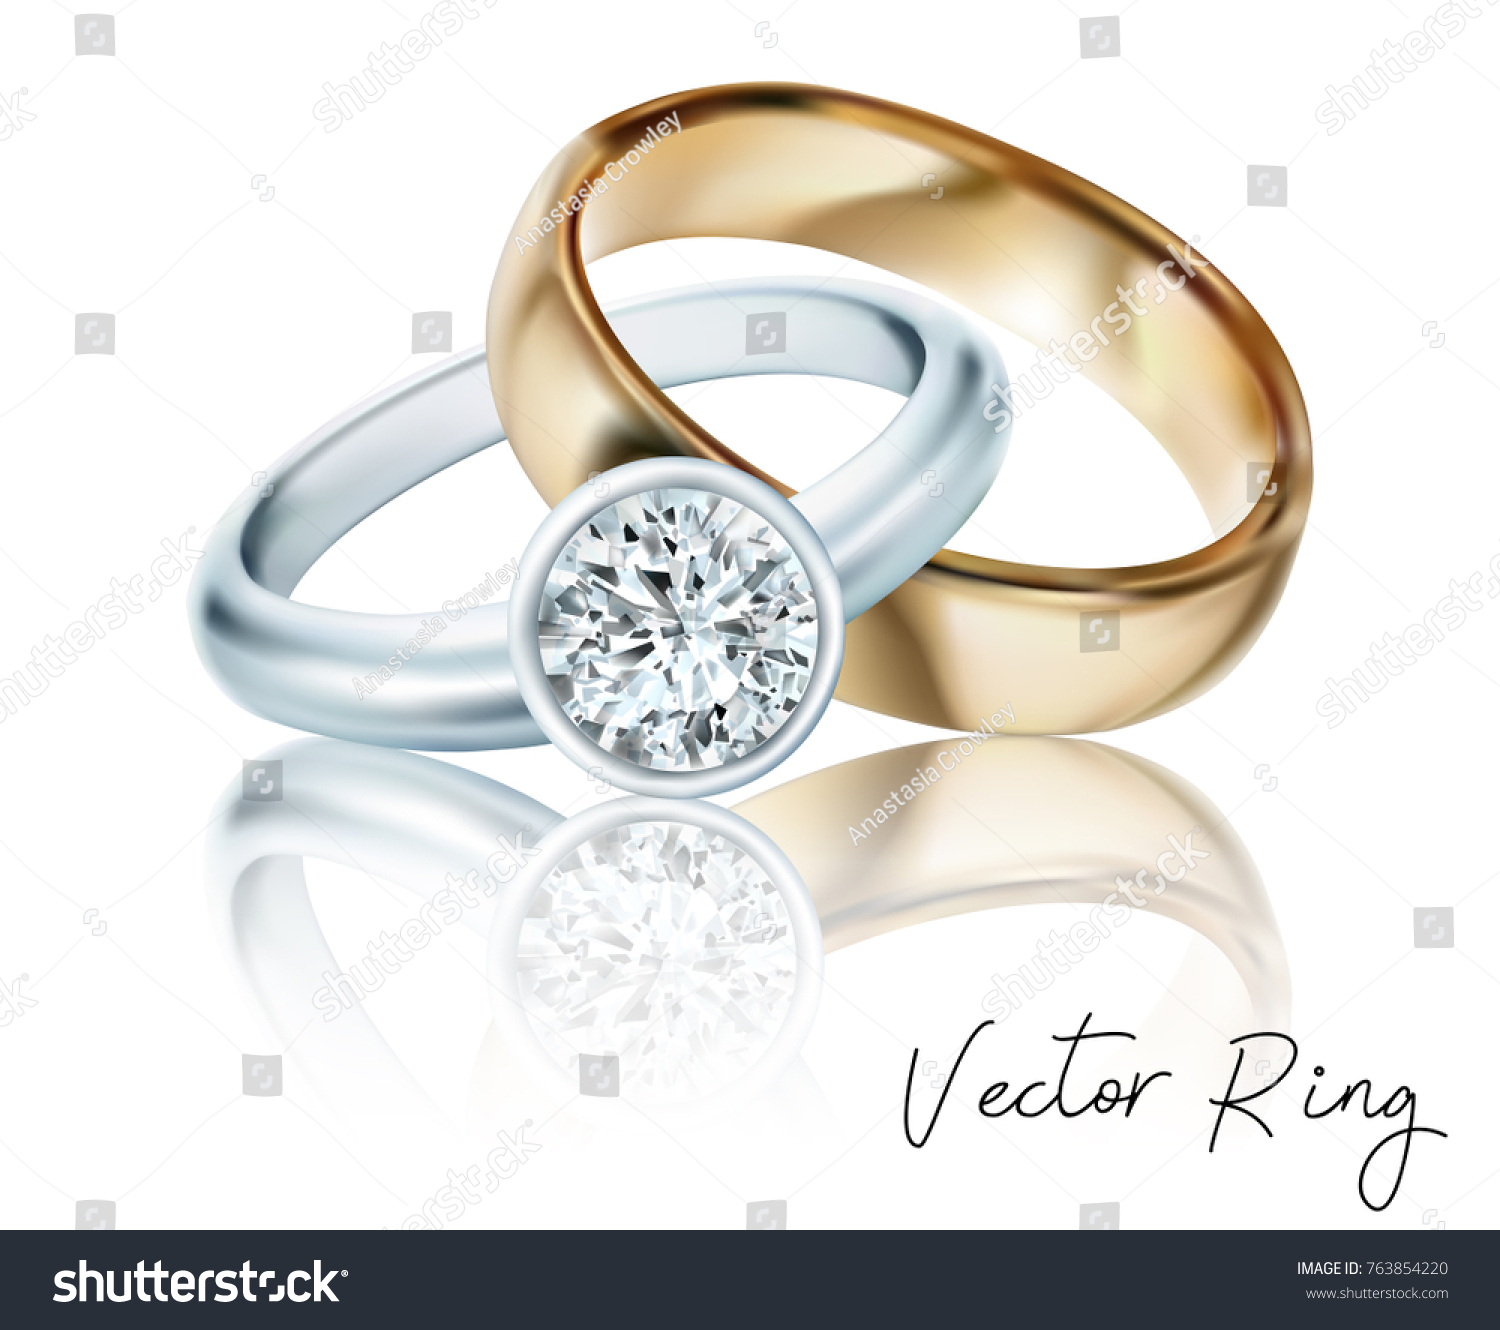 wedding rings gold silver palladium metal stock vector (royalty free